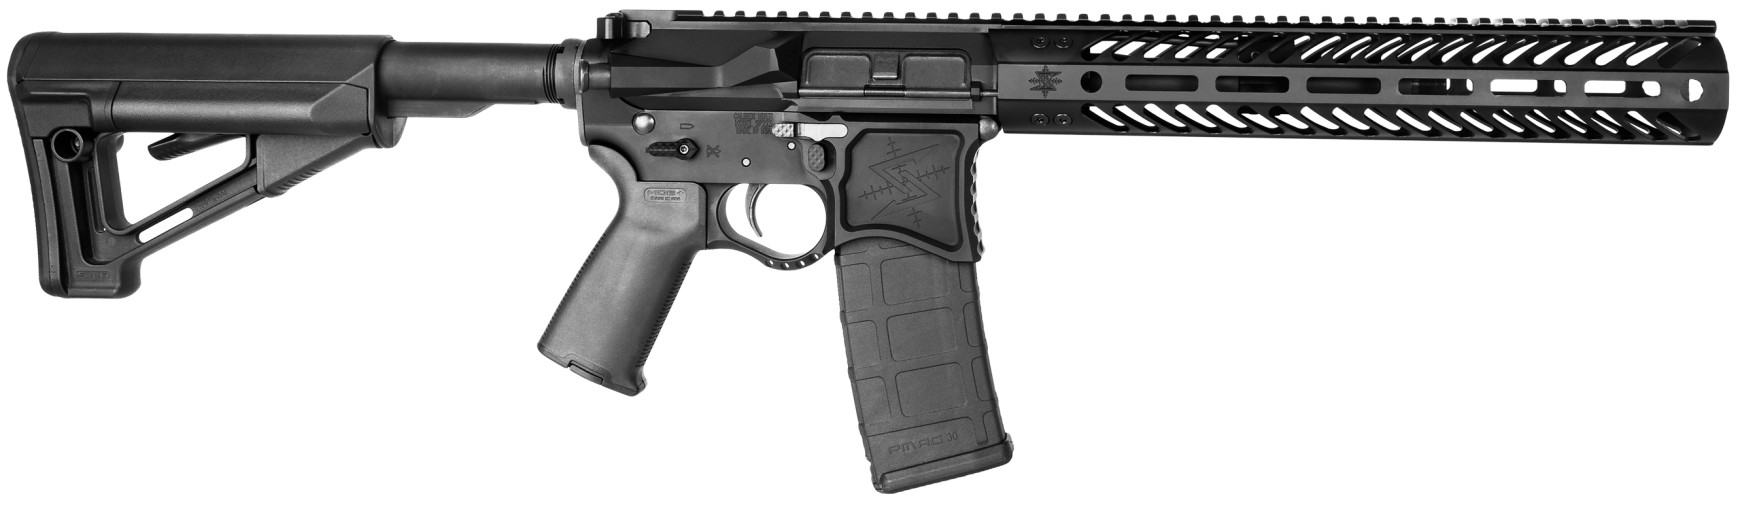 Seekins Precision SBR8 300 Blackout